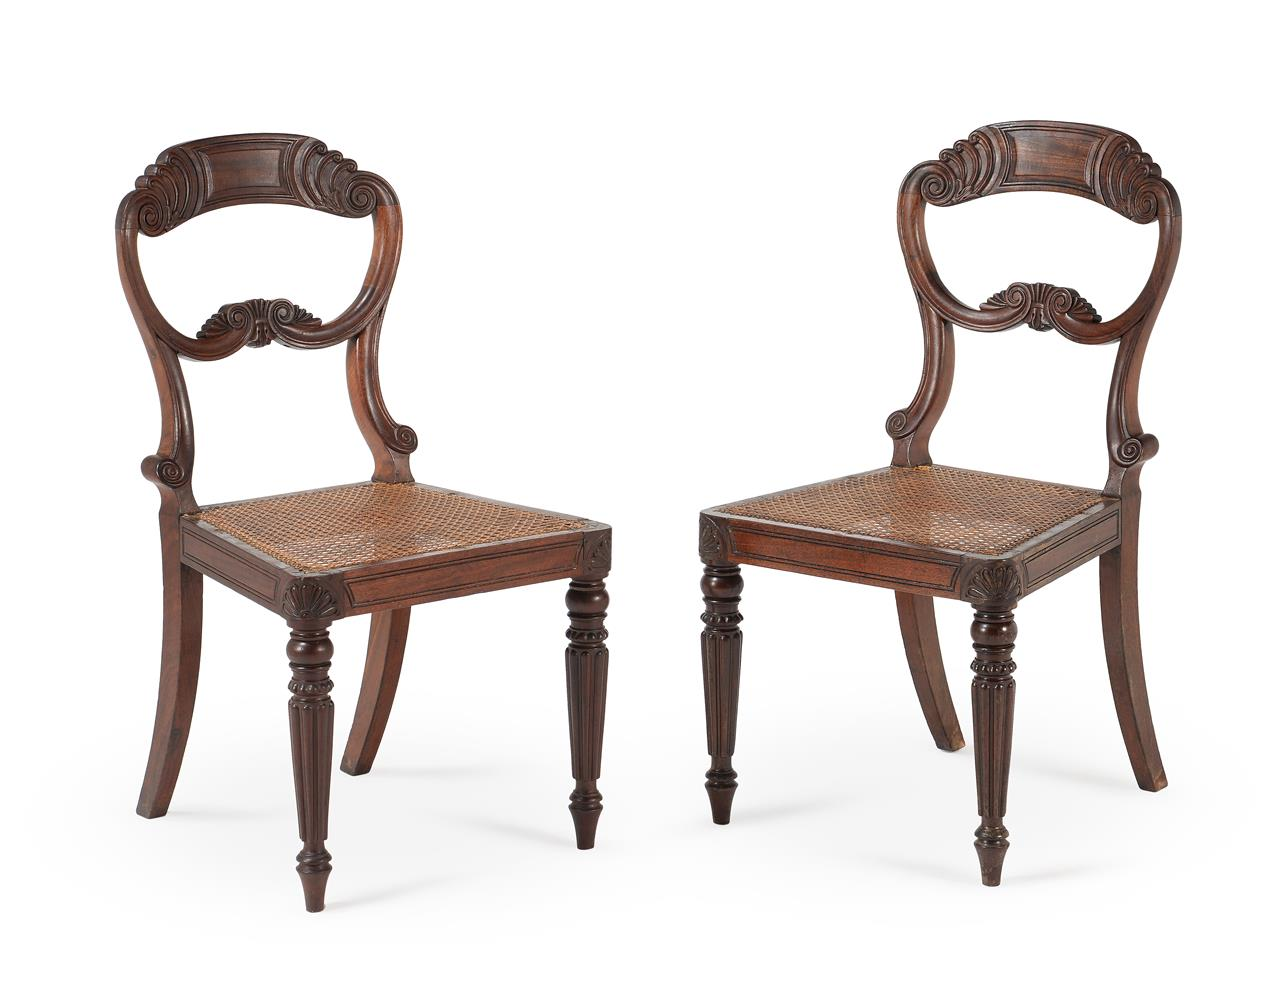 A SET OF EIGHT WILLIAM IV MAHOGANY DINING CHAIRS, CIRCA 1835, ATTRIBUTED TO GILLOWS - Image 3 of 9